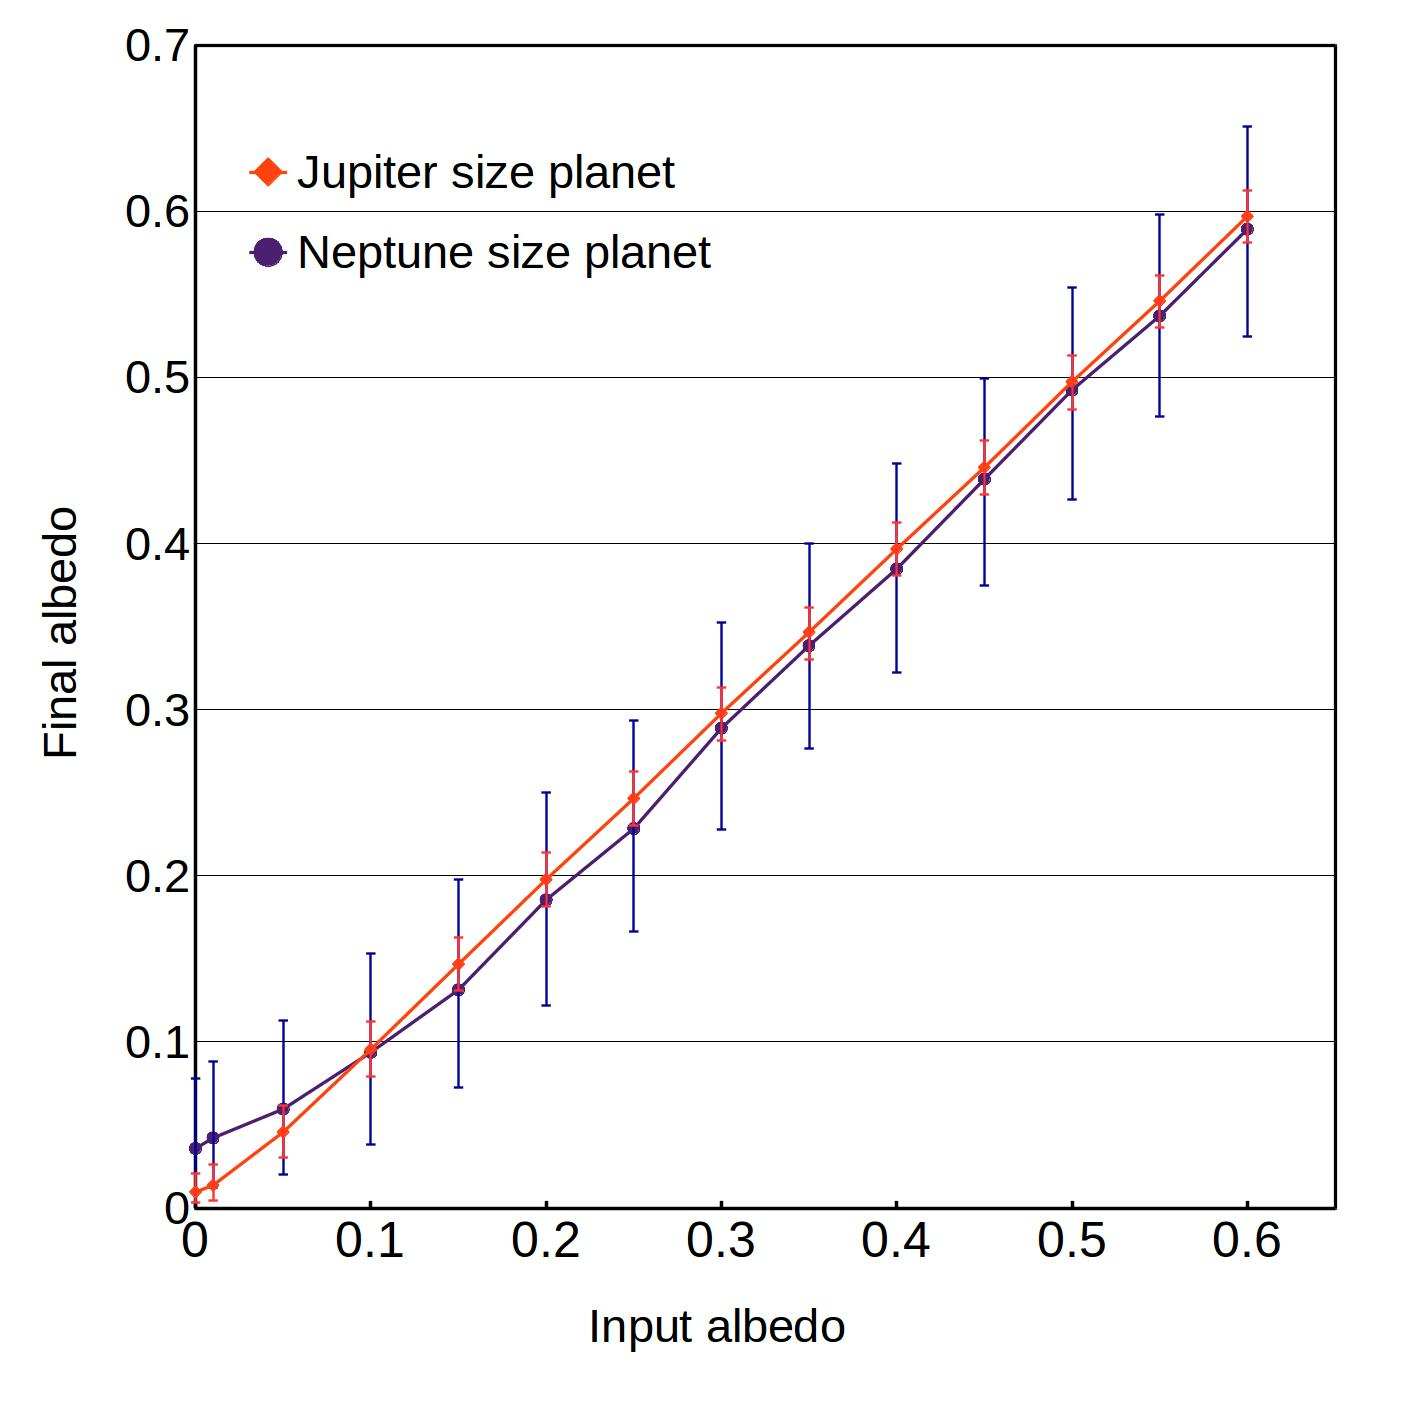 Recovered albedo values as a function of the input values for the 39-day-long simulation and a stellar rotation of